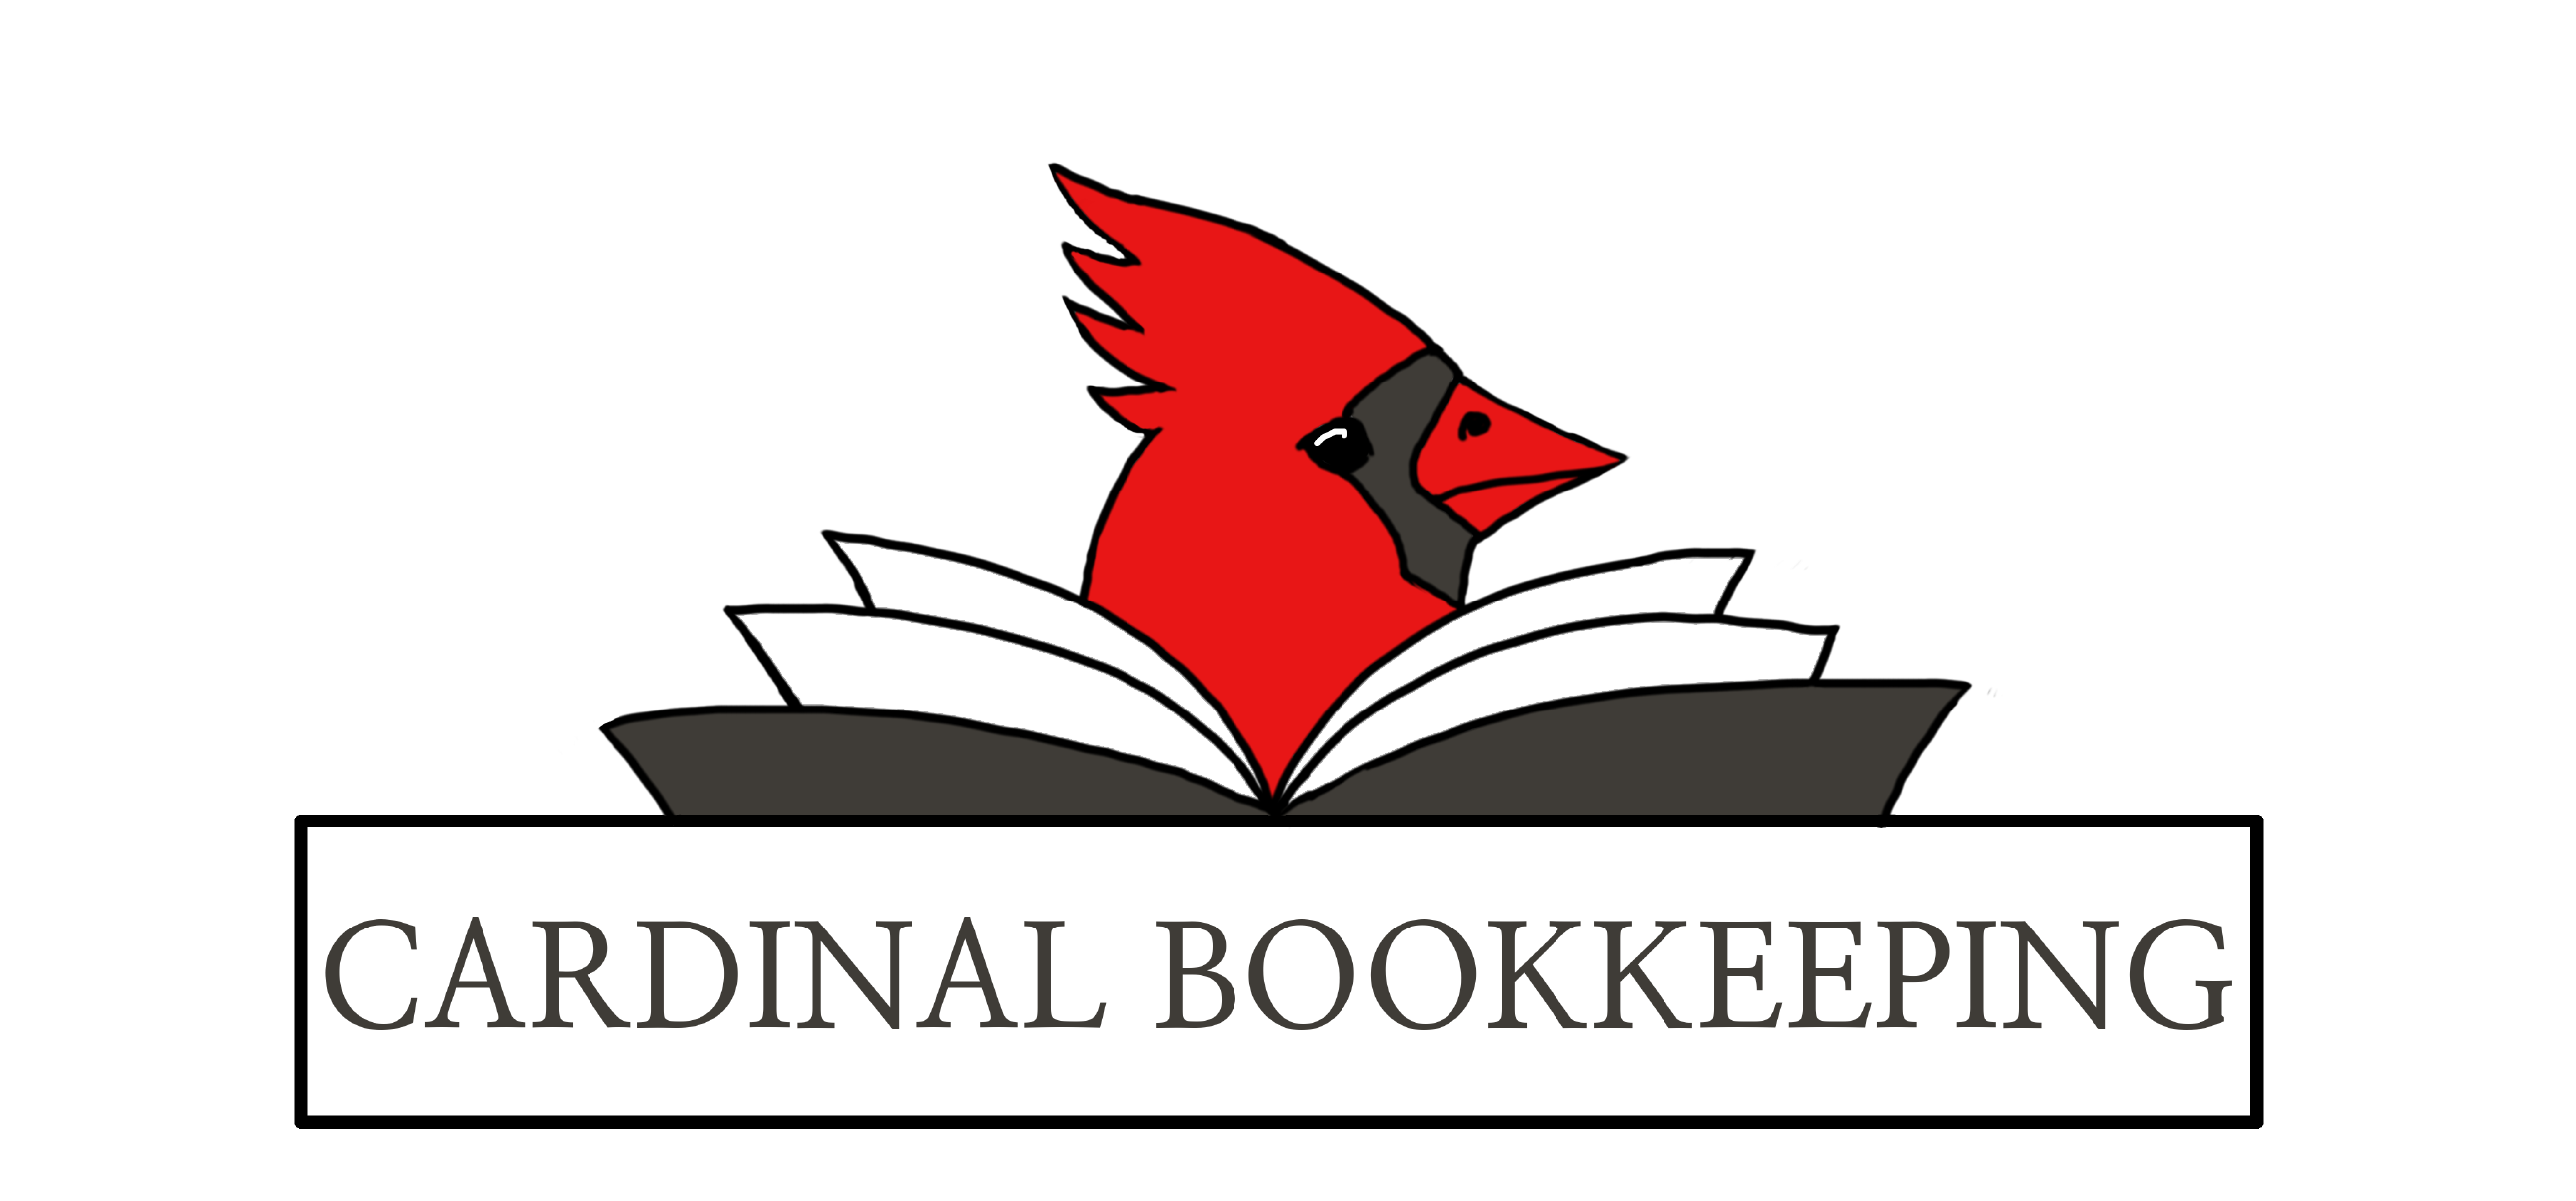 Cardinal Bookkeeping